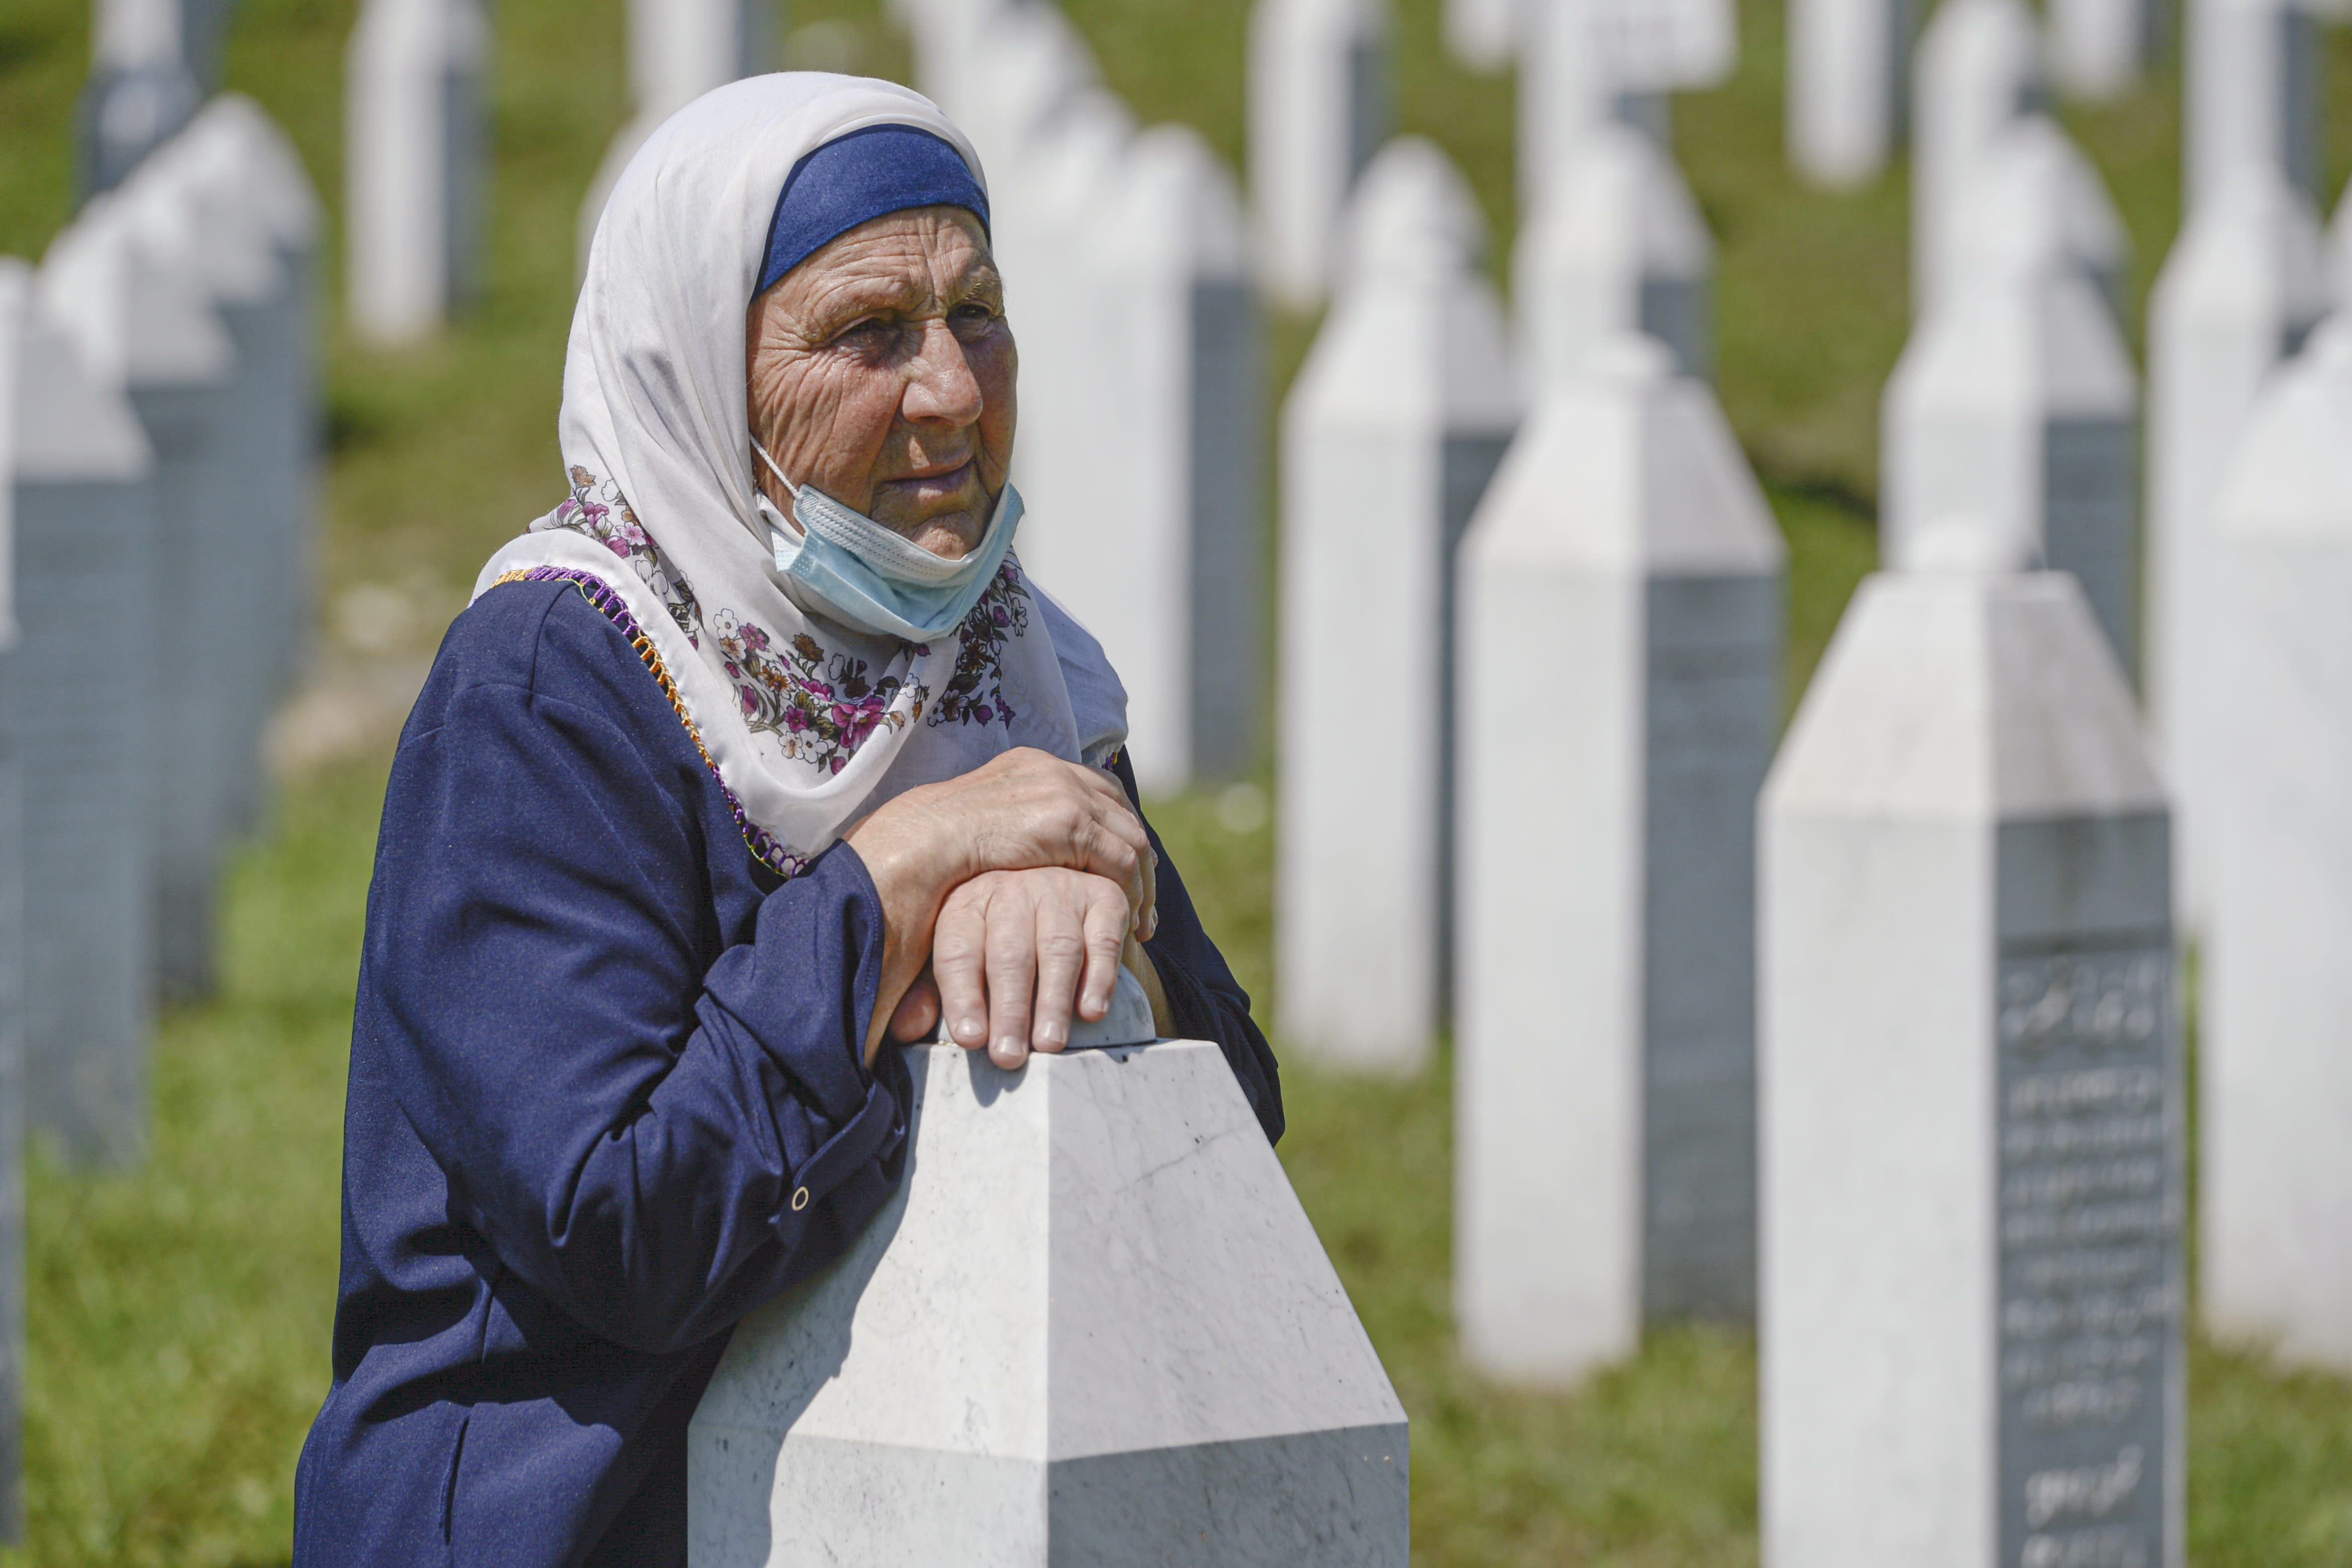 A woman leans on a grave stone in Potocari, near Srebrenica, Bosnia, Saturday, July 11, 2020. Mourners converged on the eastern Bosnian town of Srebrenica for the 25th anniversary of the country's worst carnage during the 1992-95 war and the only crime in Europe since World War II that has been declared a genocide. (AP Photo/Kemal Softic)